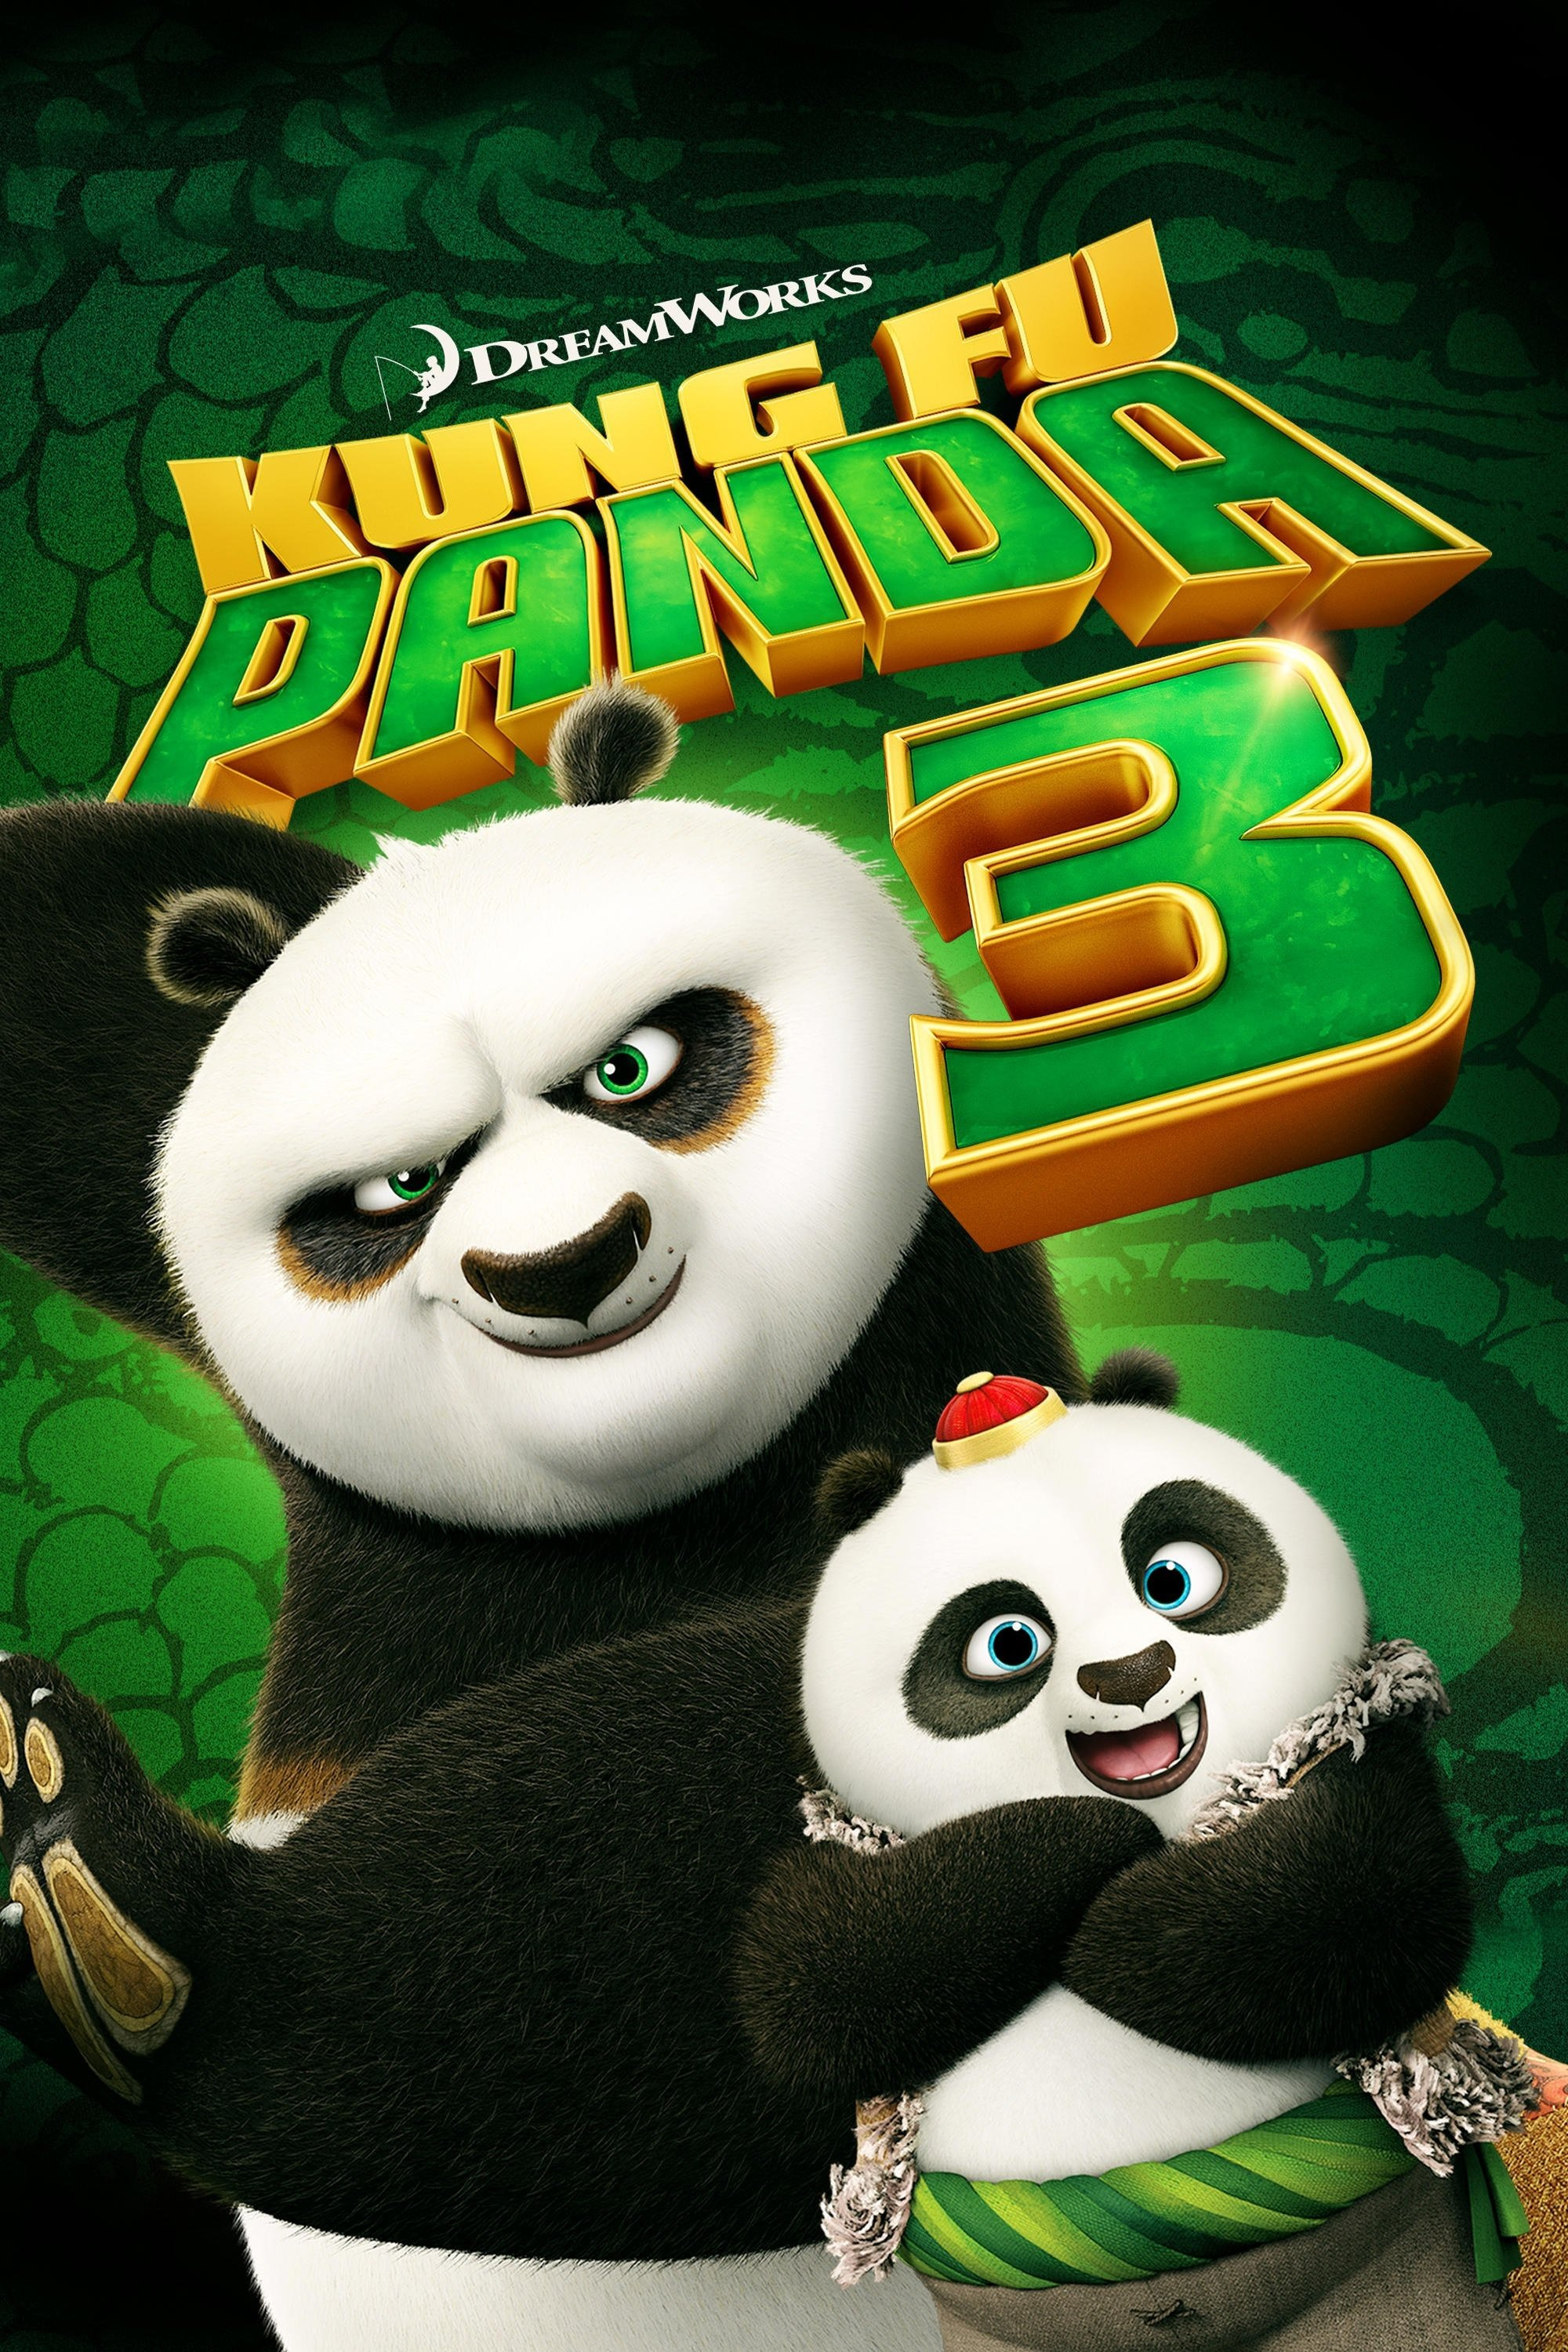 Kung Fu Panda 3 2016 1080p BRRip x264 AAC – ETRG 1.4Gb